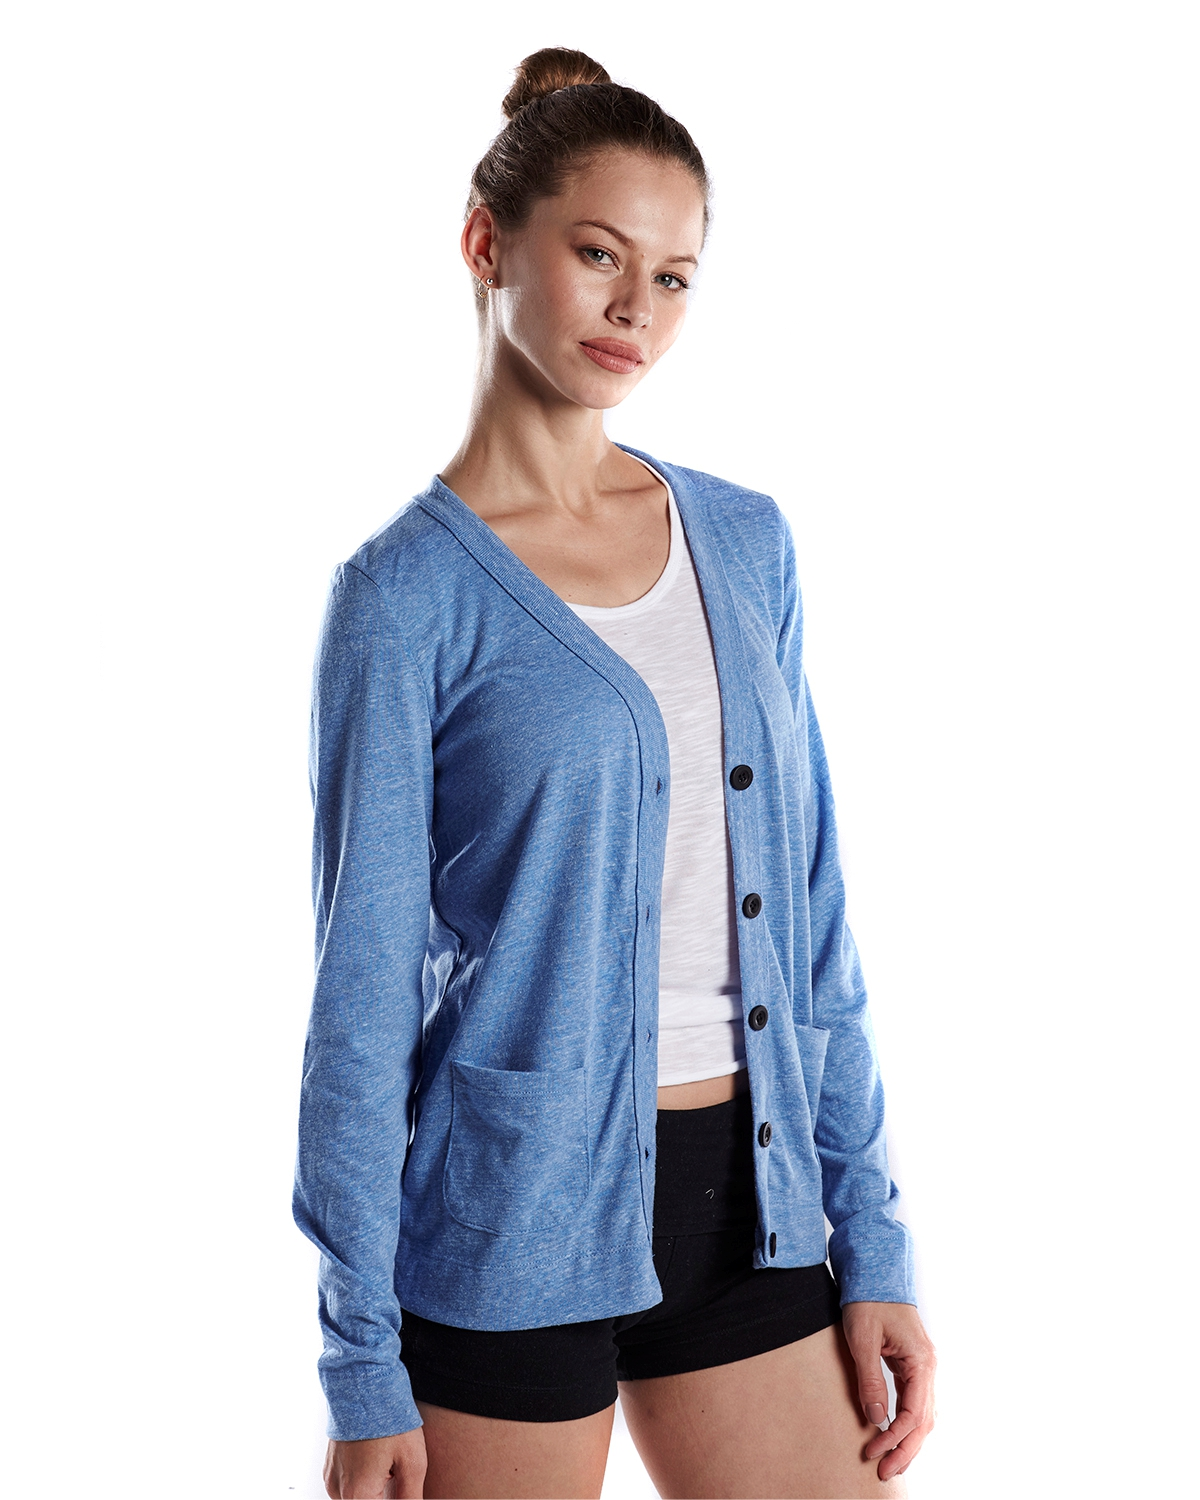 Ladies 4.9 oz Cardigan #US950